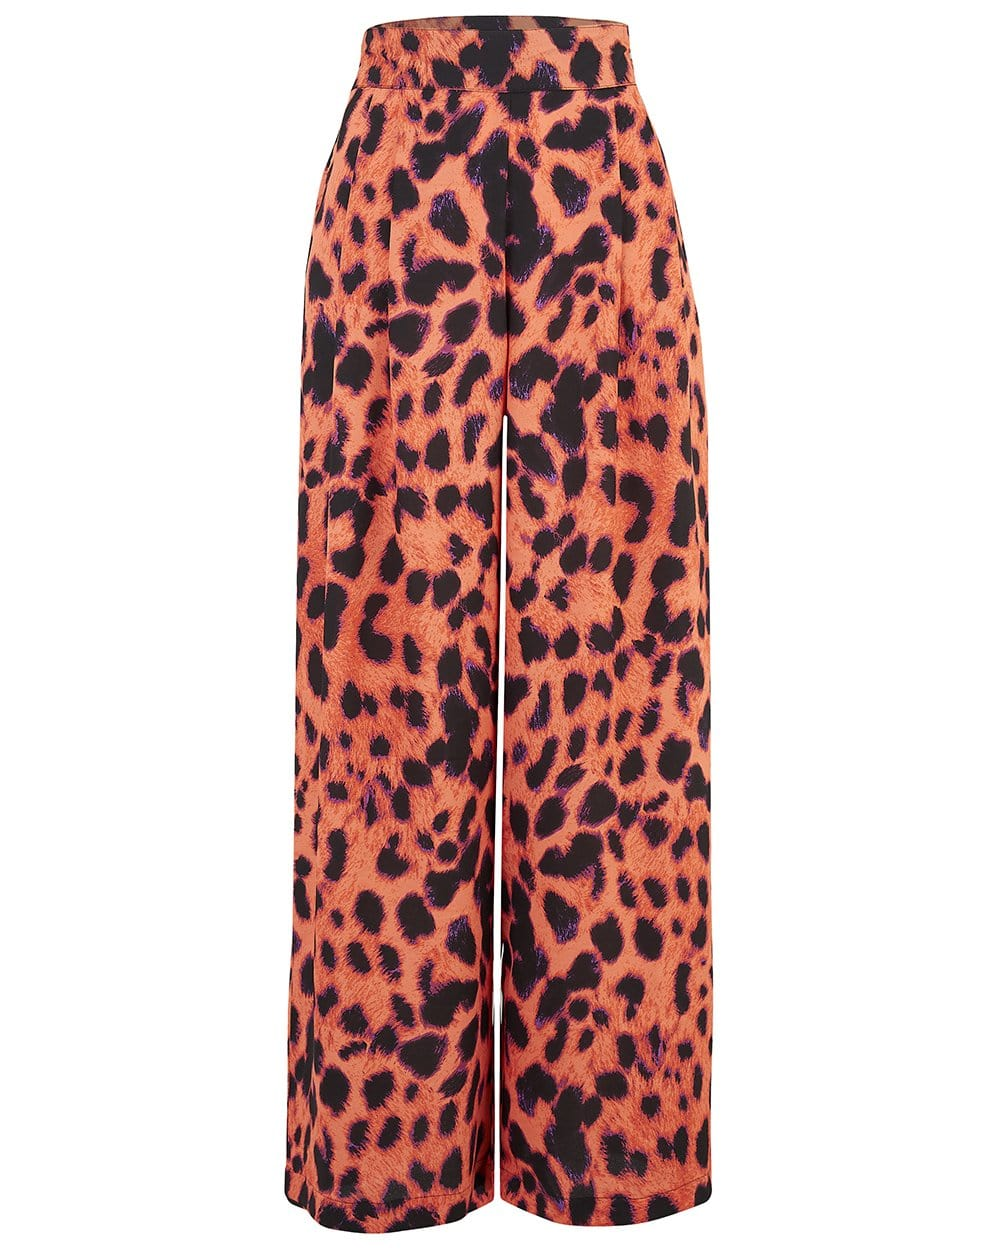 Front view of Dancing Leopard Joey Palazzo Trousers in pink-orange leopard print